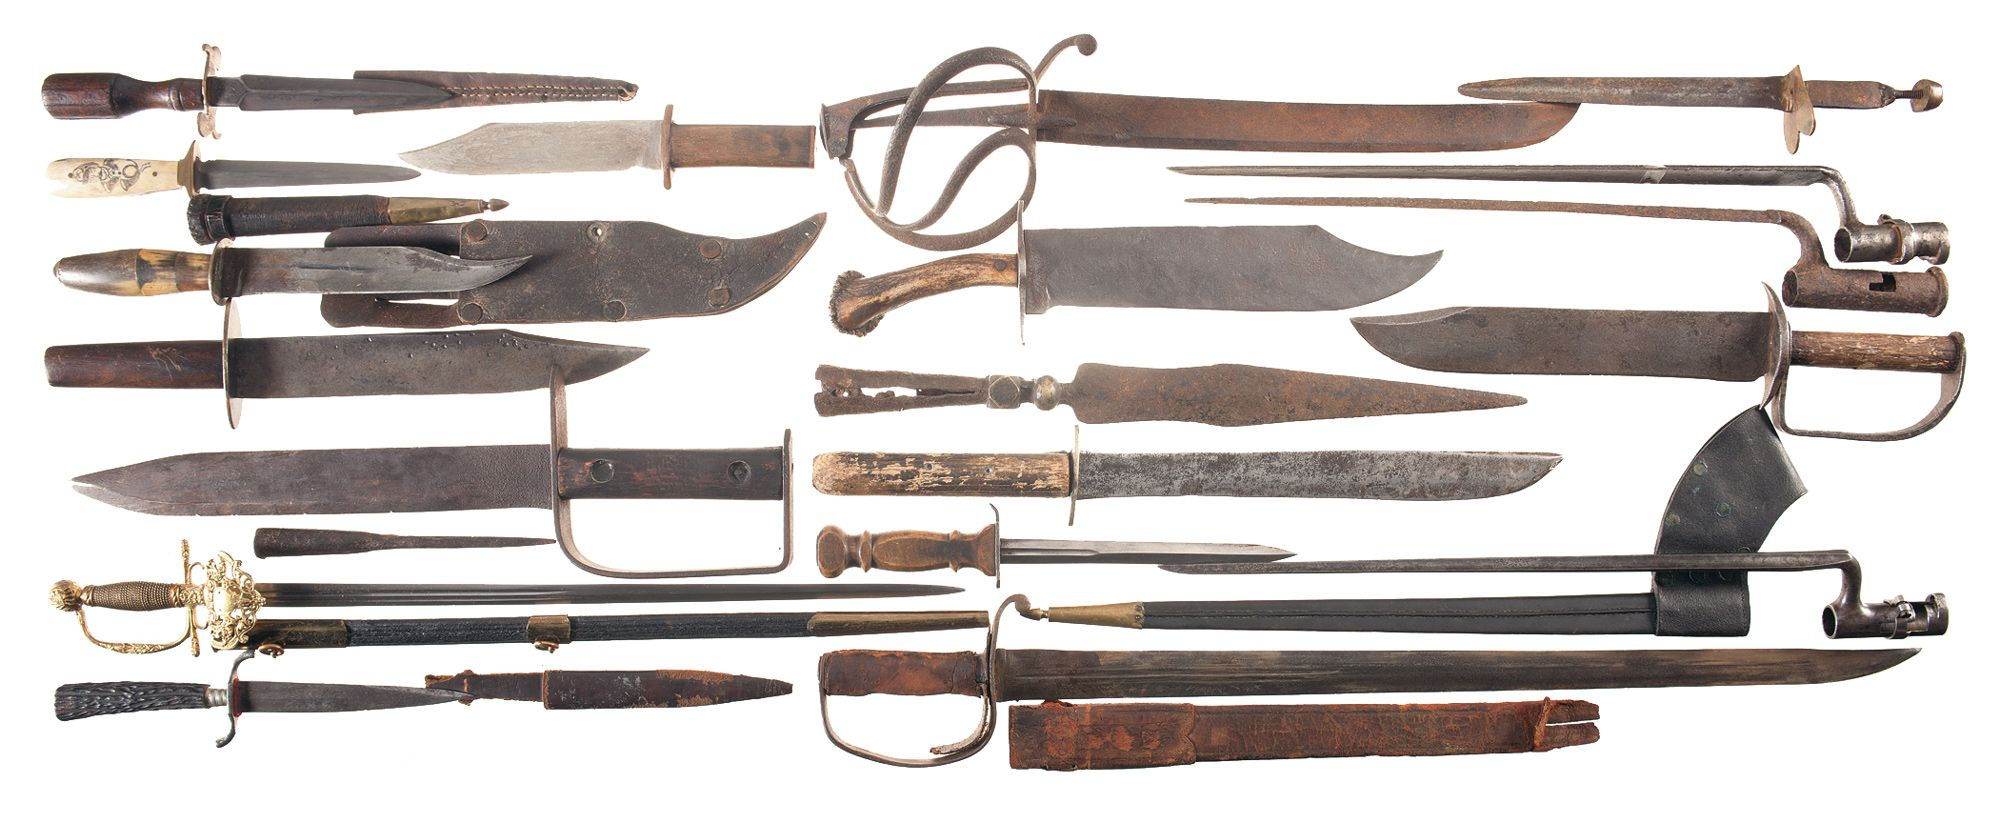 weapons of the civil war   Edged Weapons, Civil War and Other ...